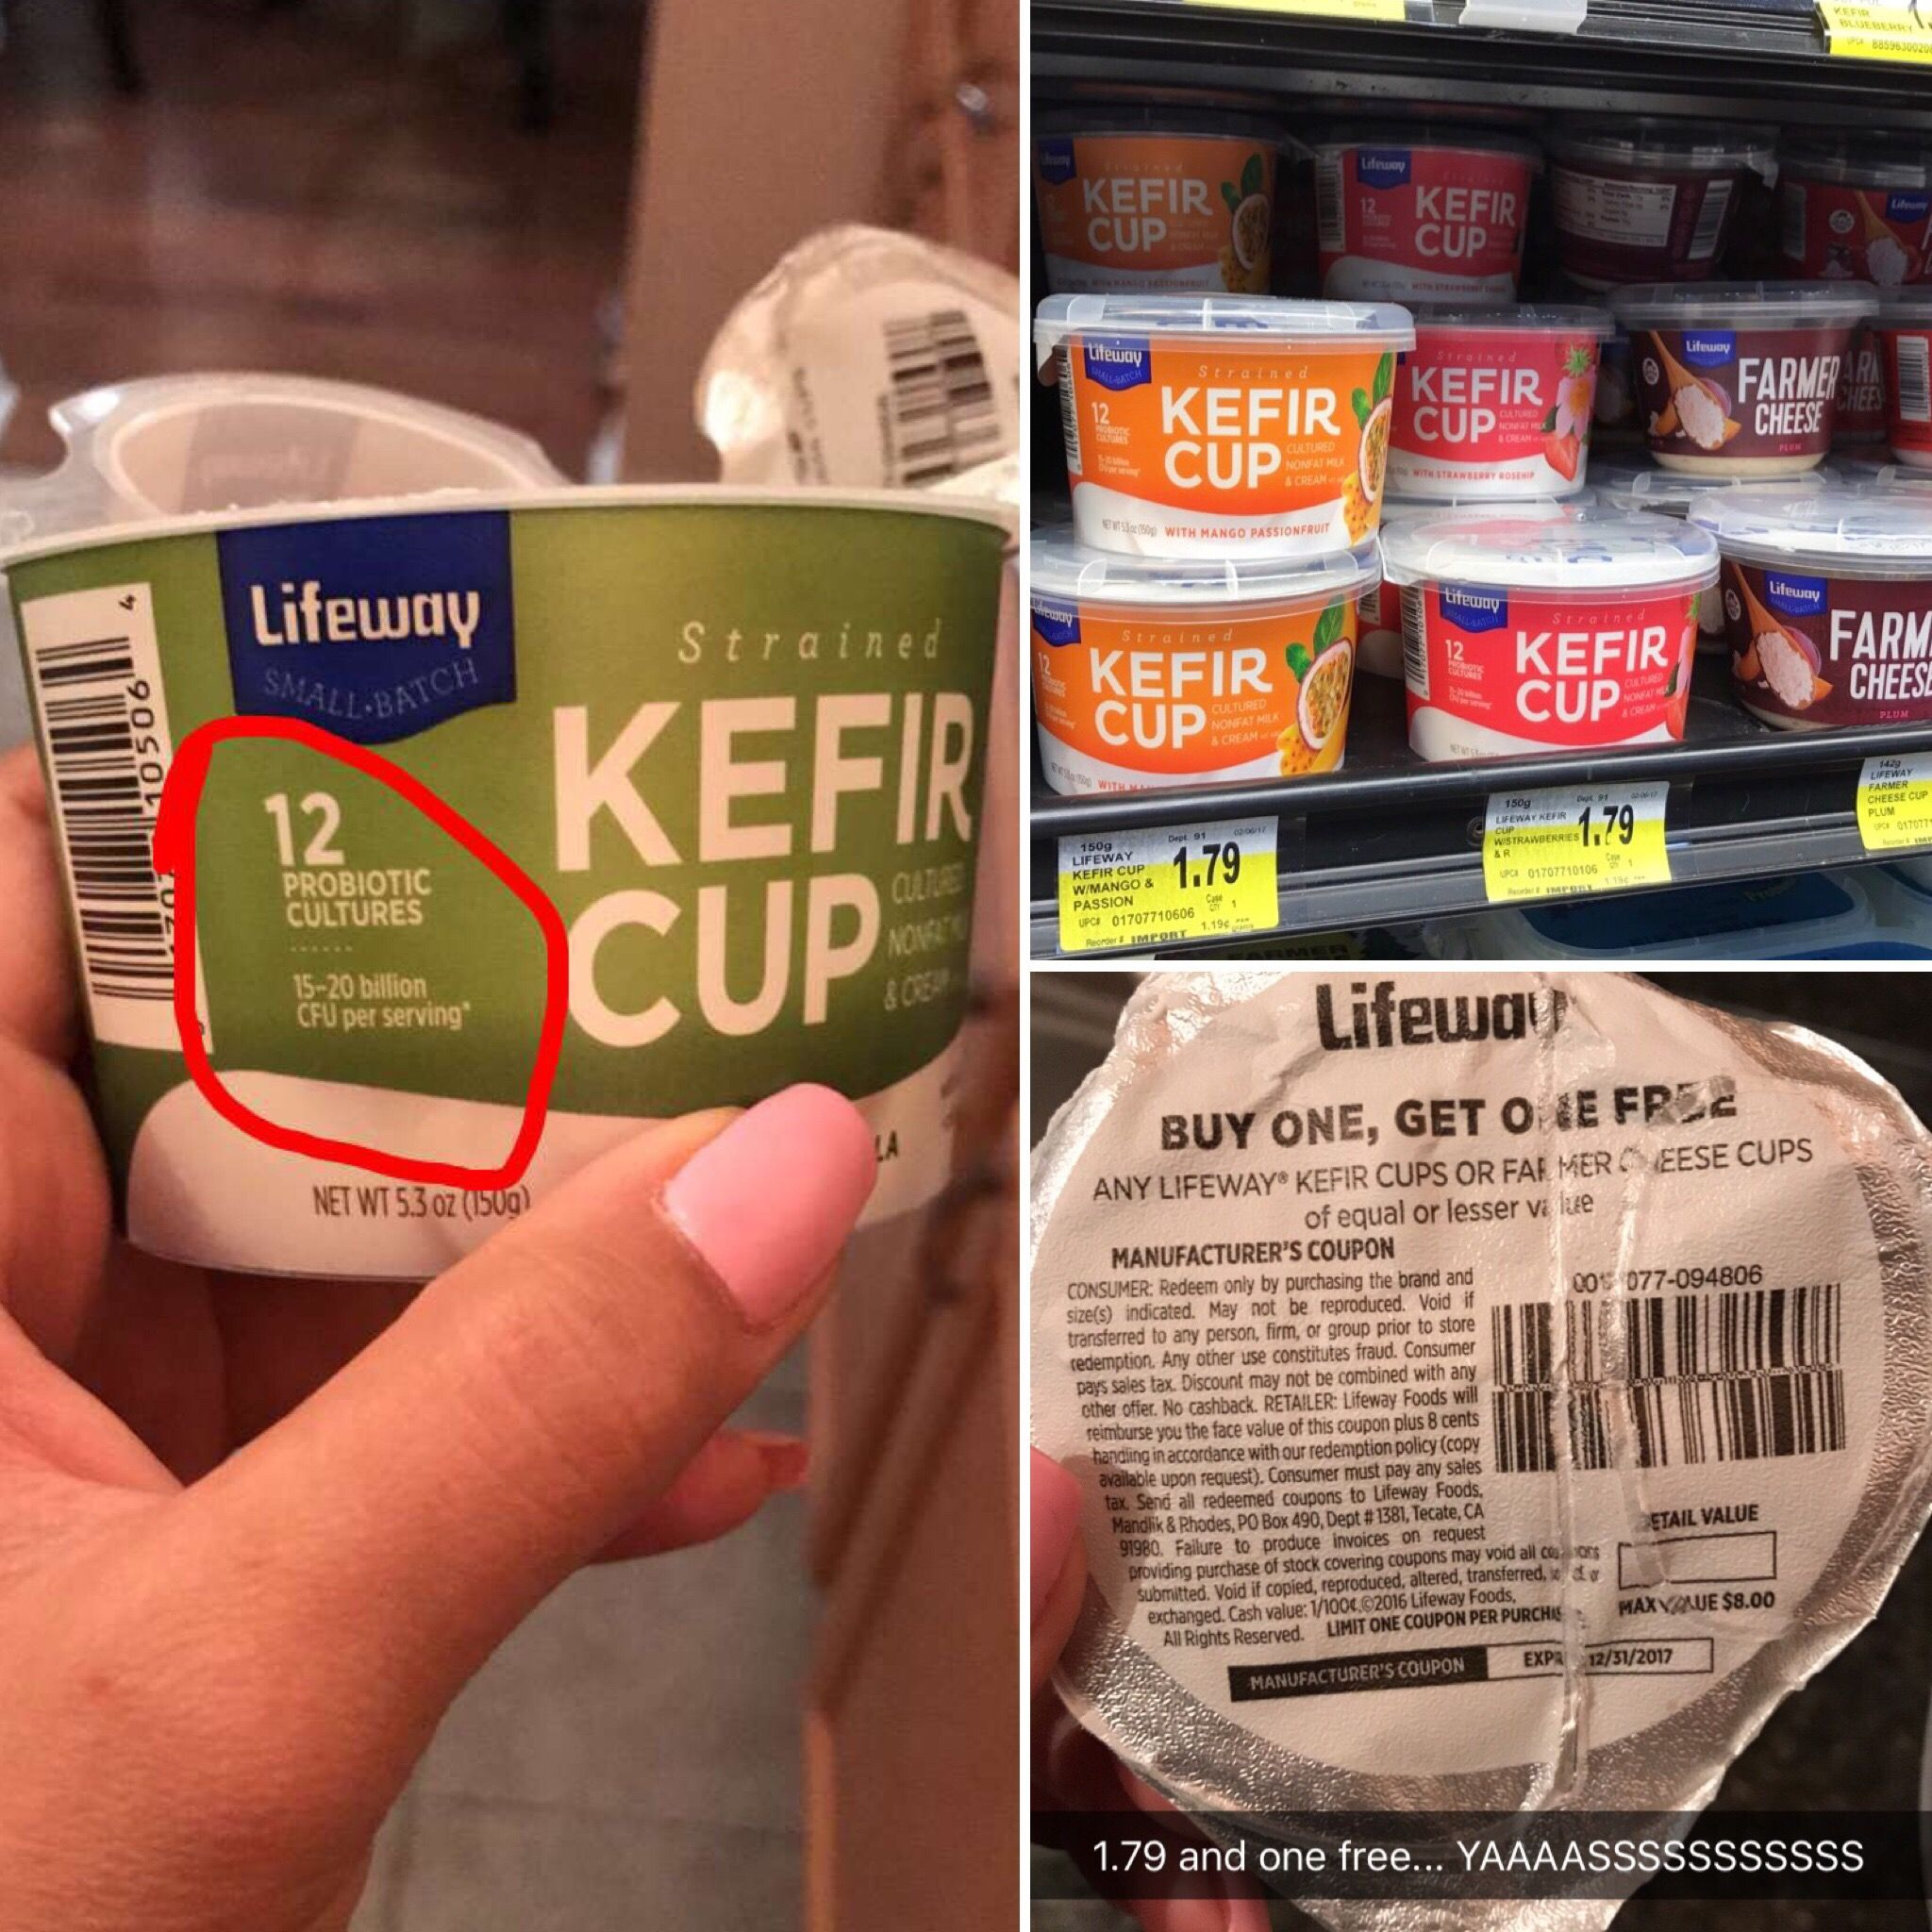 So I Love These Lifeway Kefir Cups All The Benefits Of Kefir In To Go Single Serving That Comes With A Spoon Many Fla Kefir Benefits Kefir Kefir Probiotic